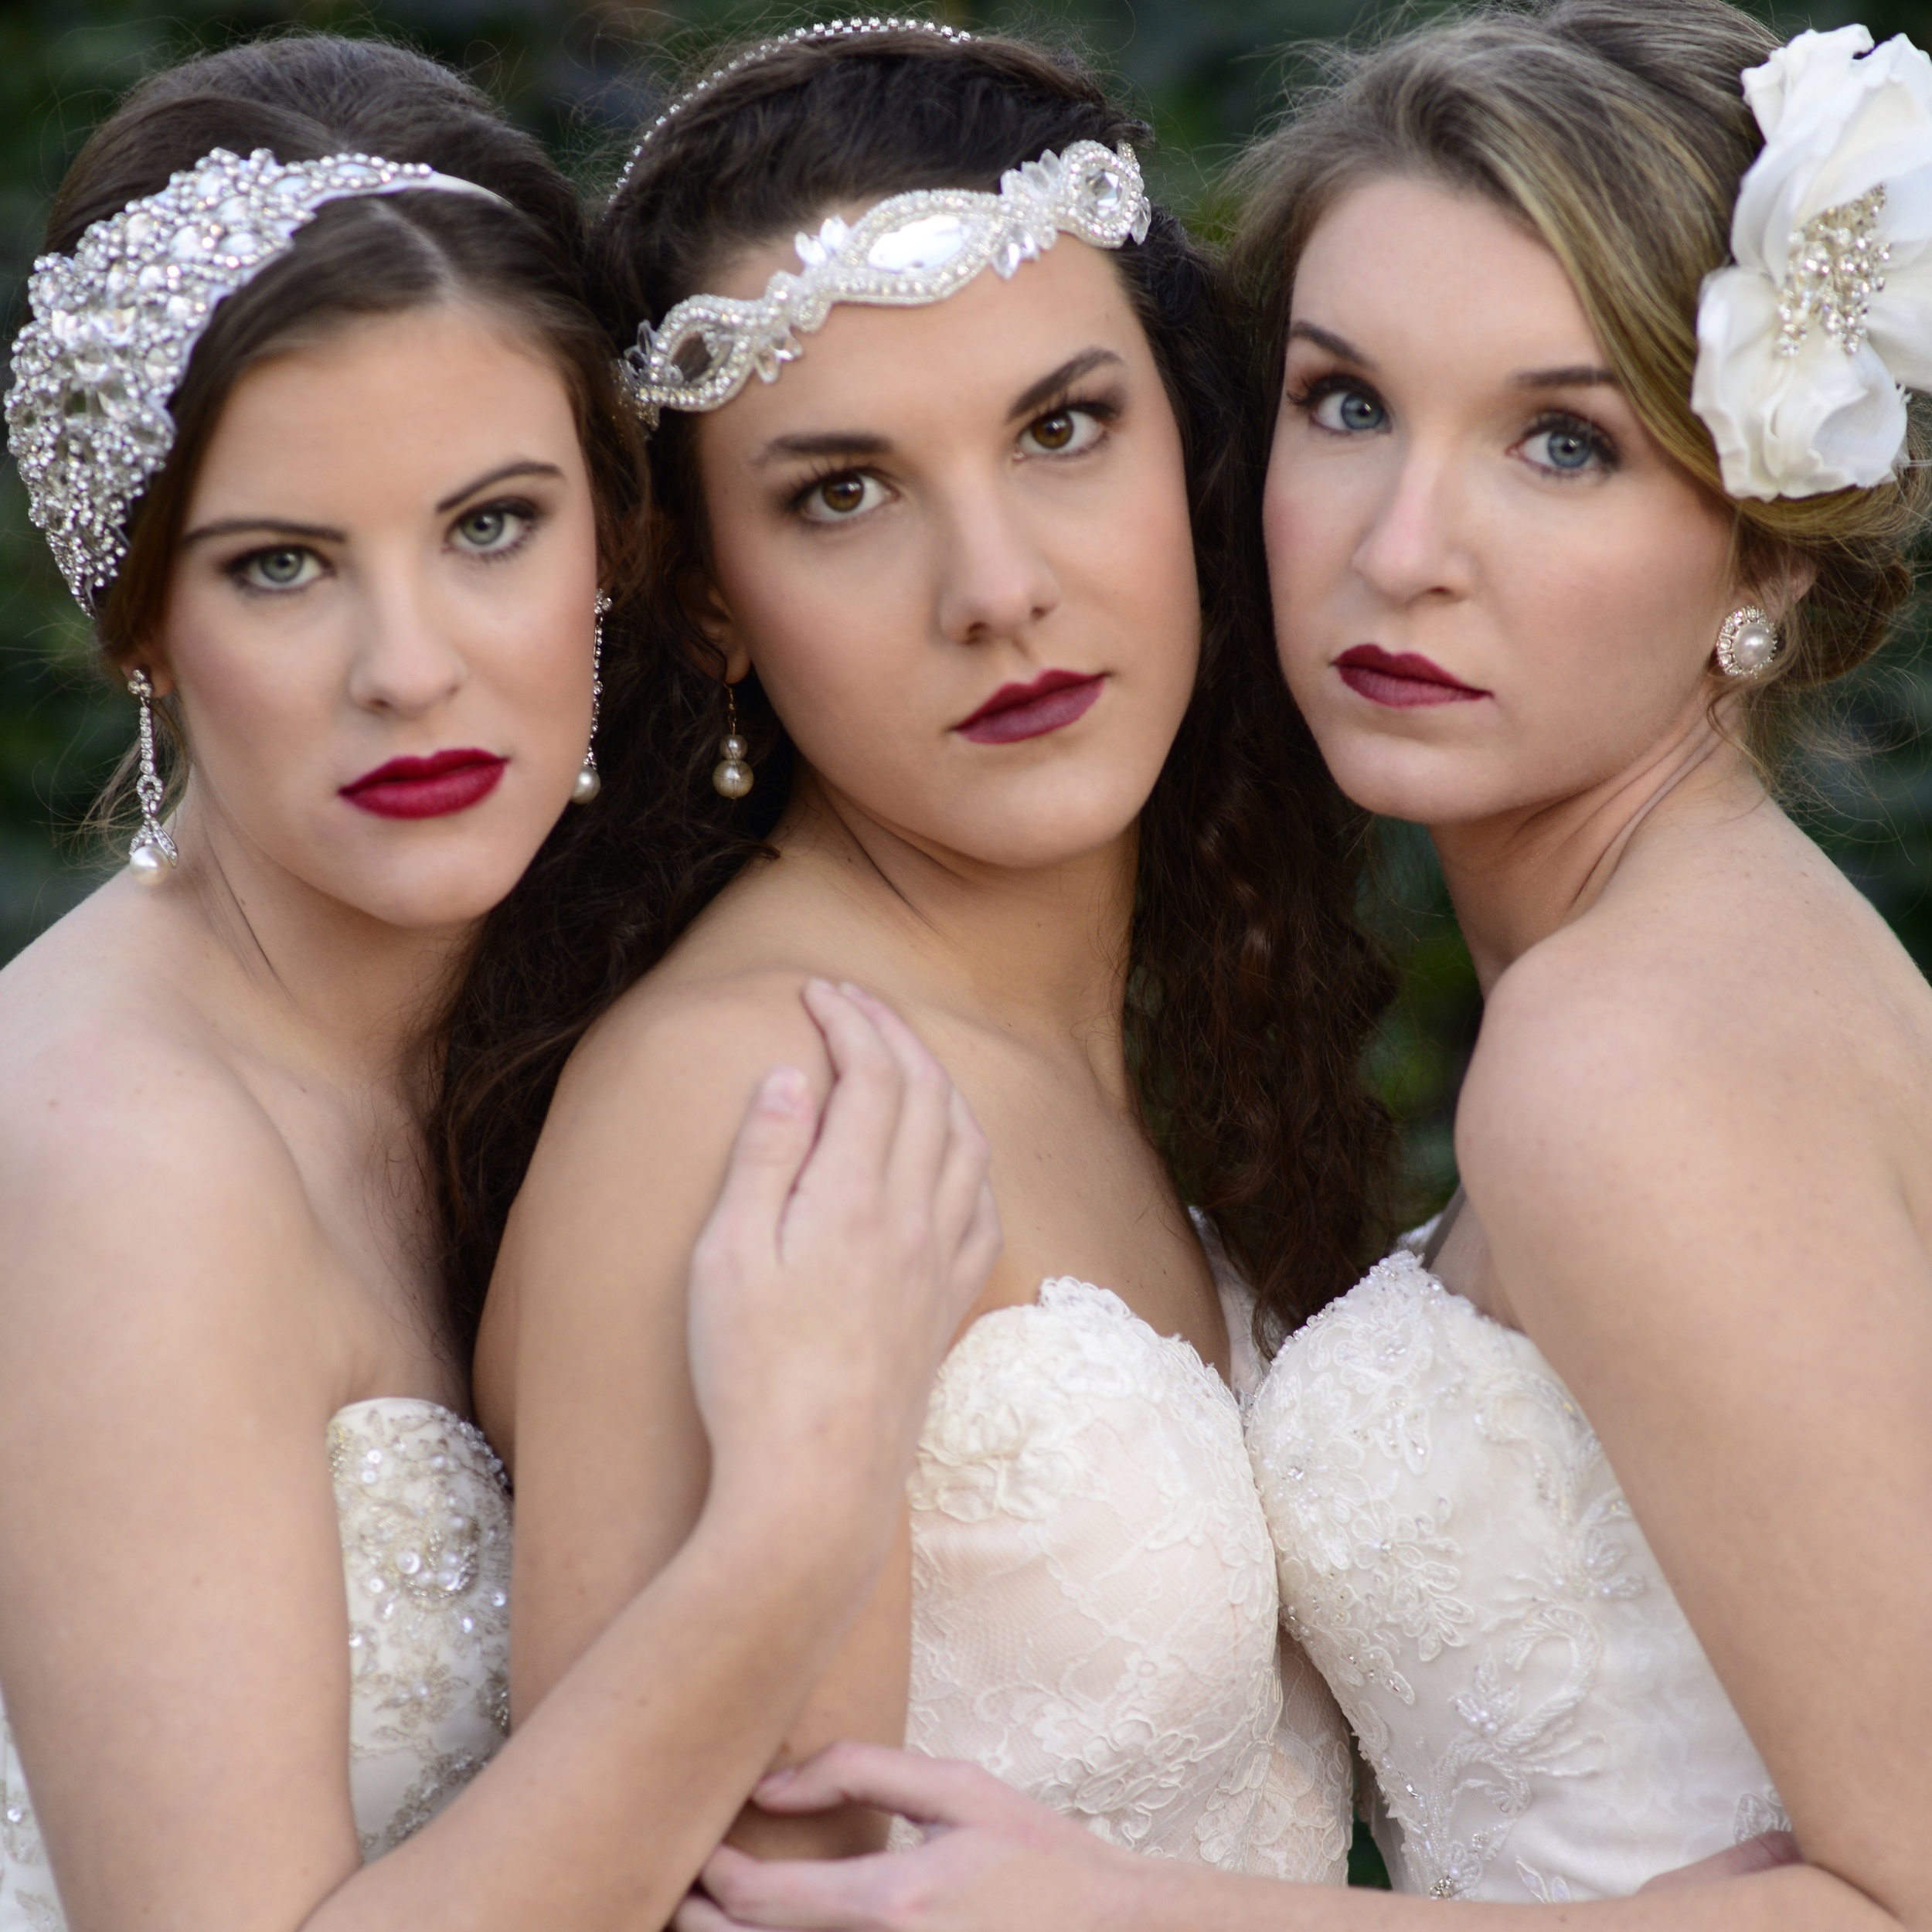 Modeling Bridal gowns and Vintage headbands by Voila Bridal of Greenwood SC.